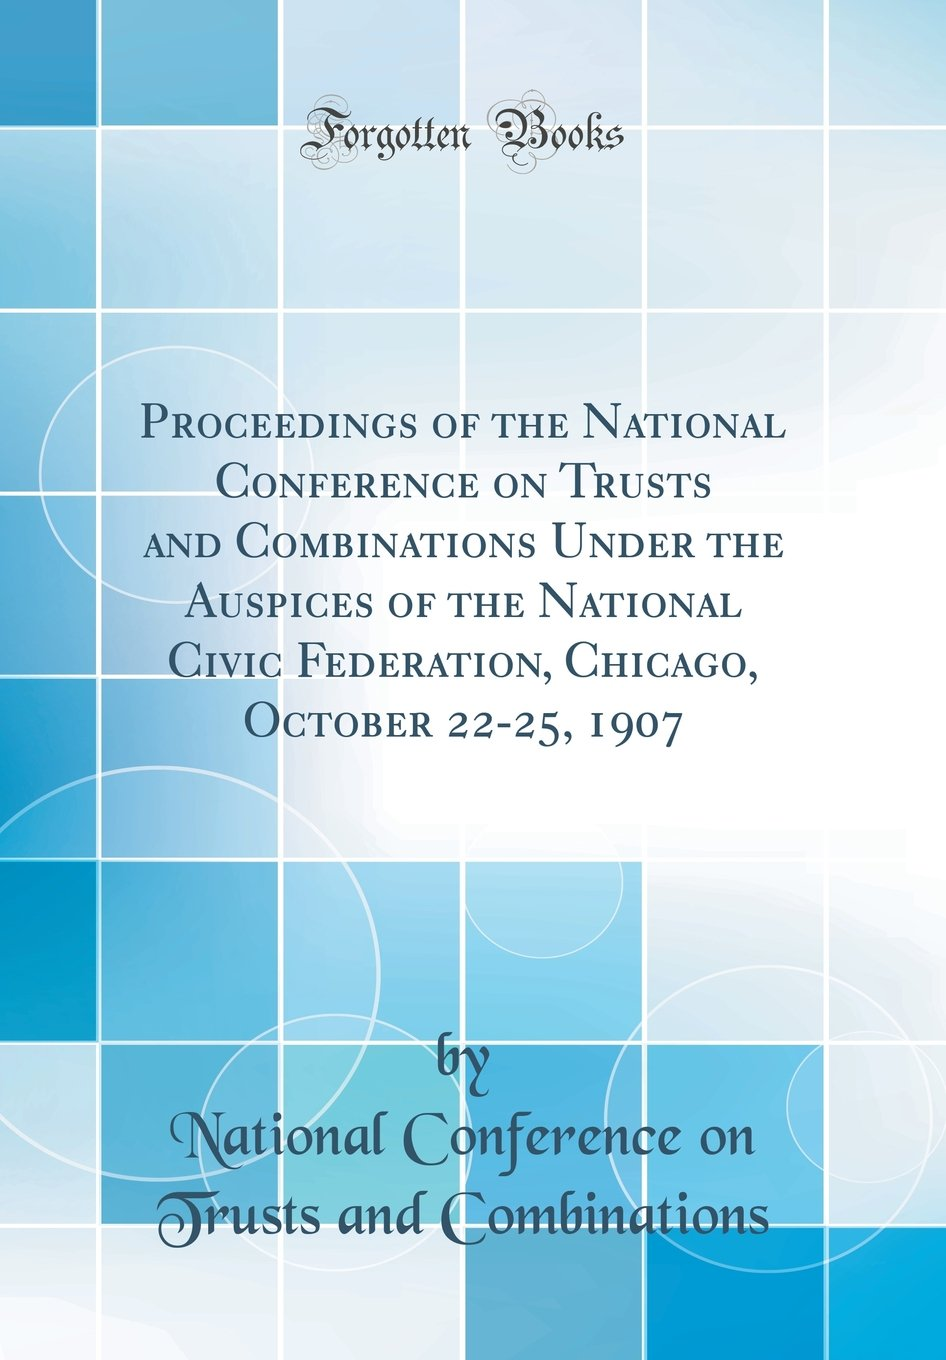 Proceedings of the National Conference on Trusts and Combinations Under the Auspices of the National Civic Federation, Chicago, October 22-25, 1907 (Classic Reprint) PDF